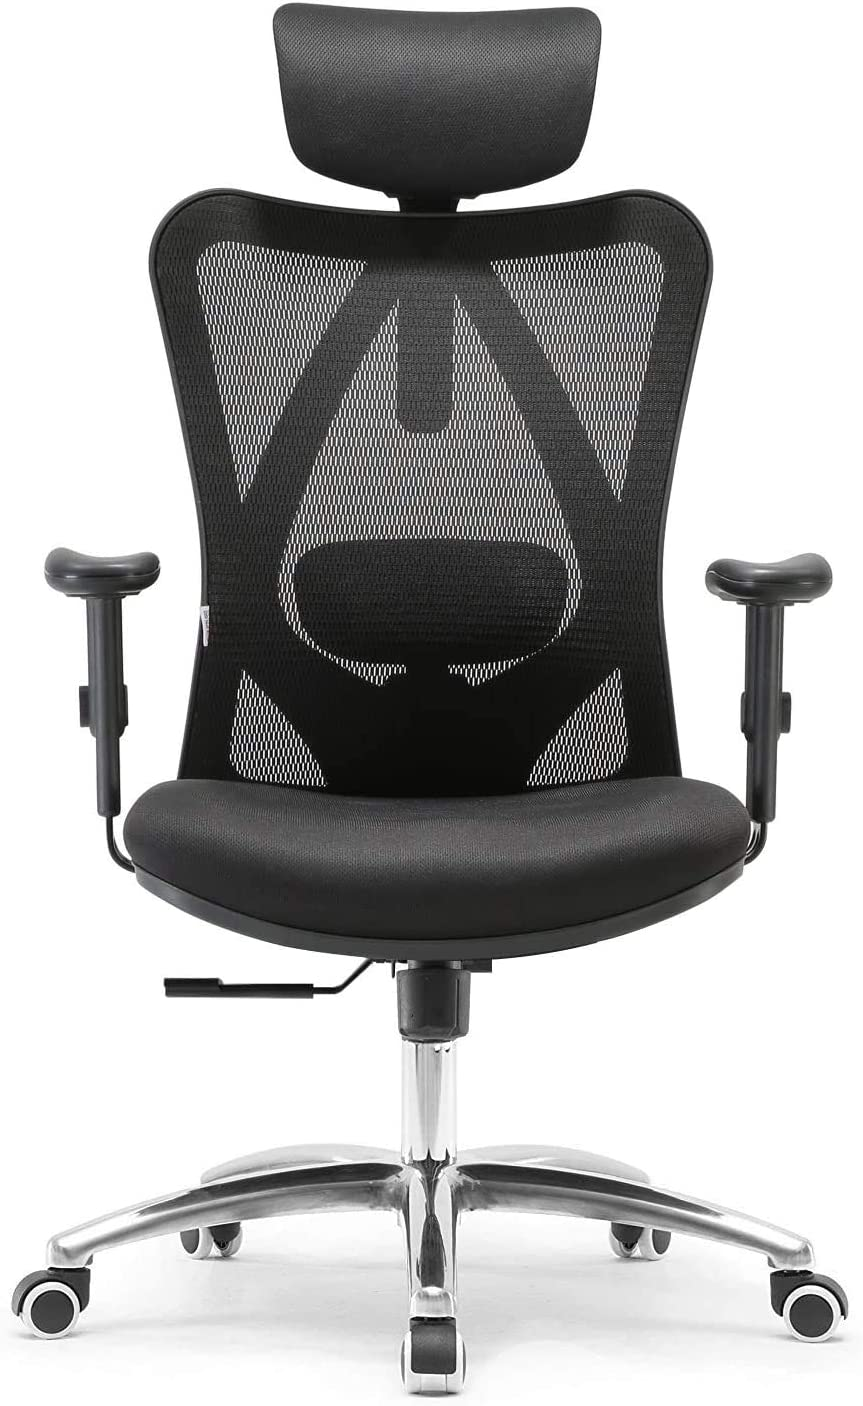 SIHOO Ergonomics Office Chair Computer Chair Desk Chair